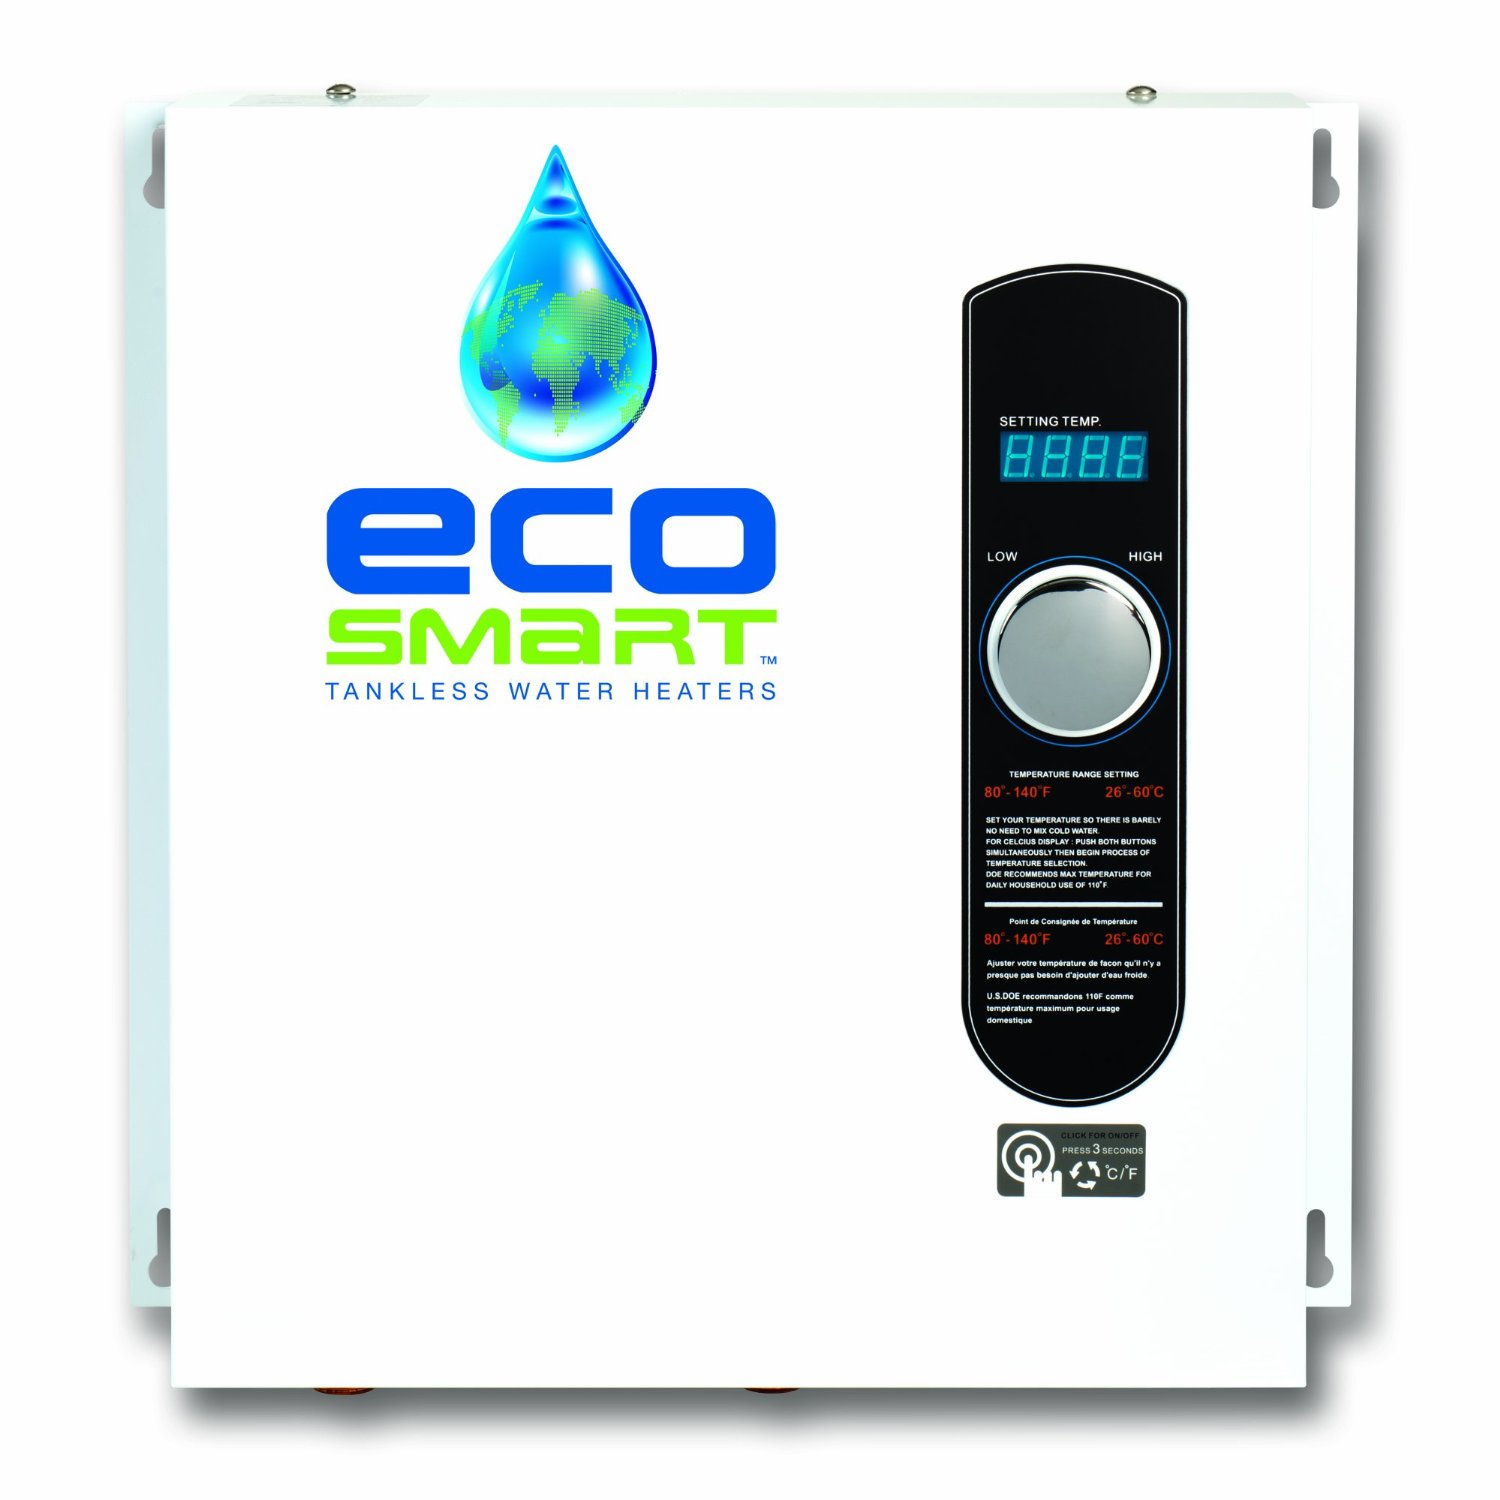 EcoSmart 27 Tankless Water Heater